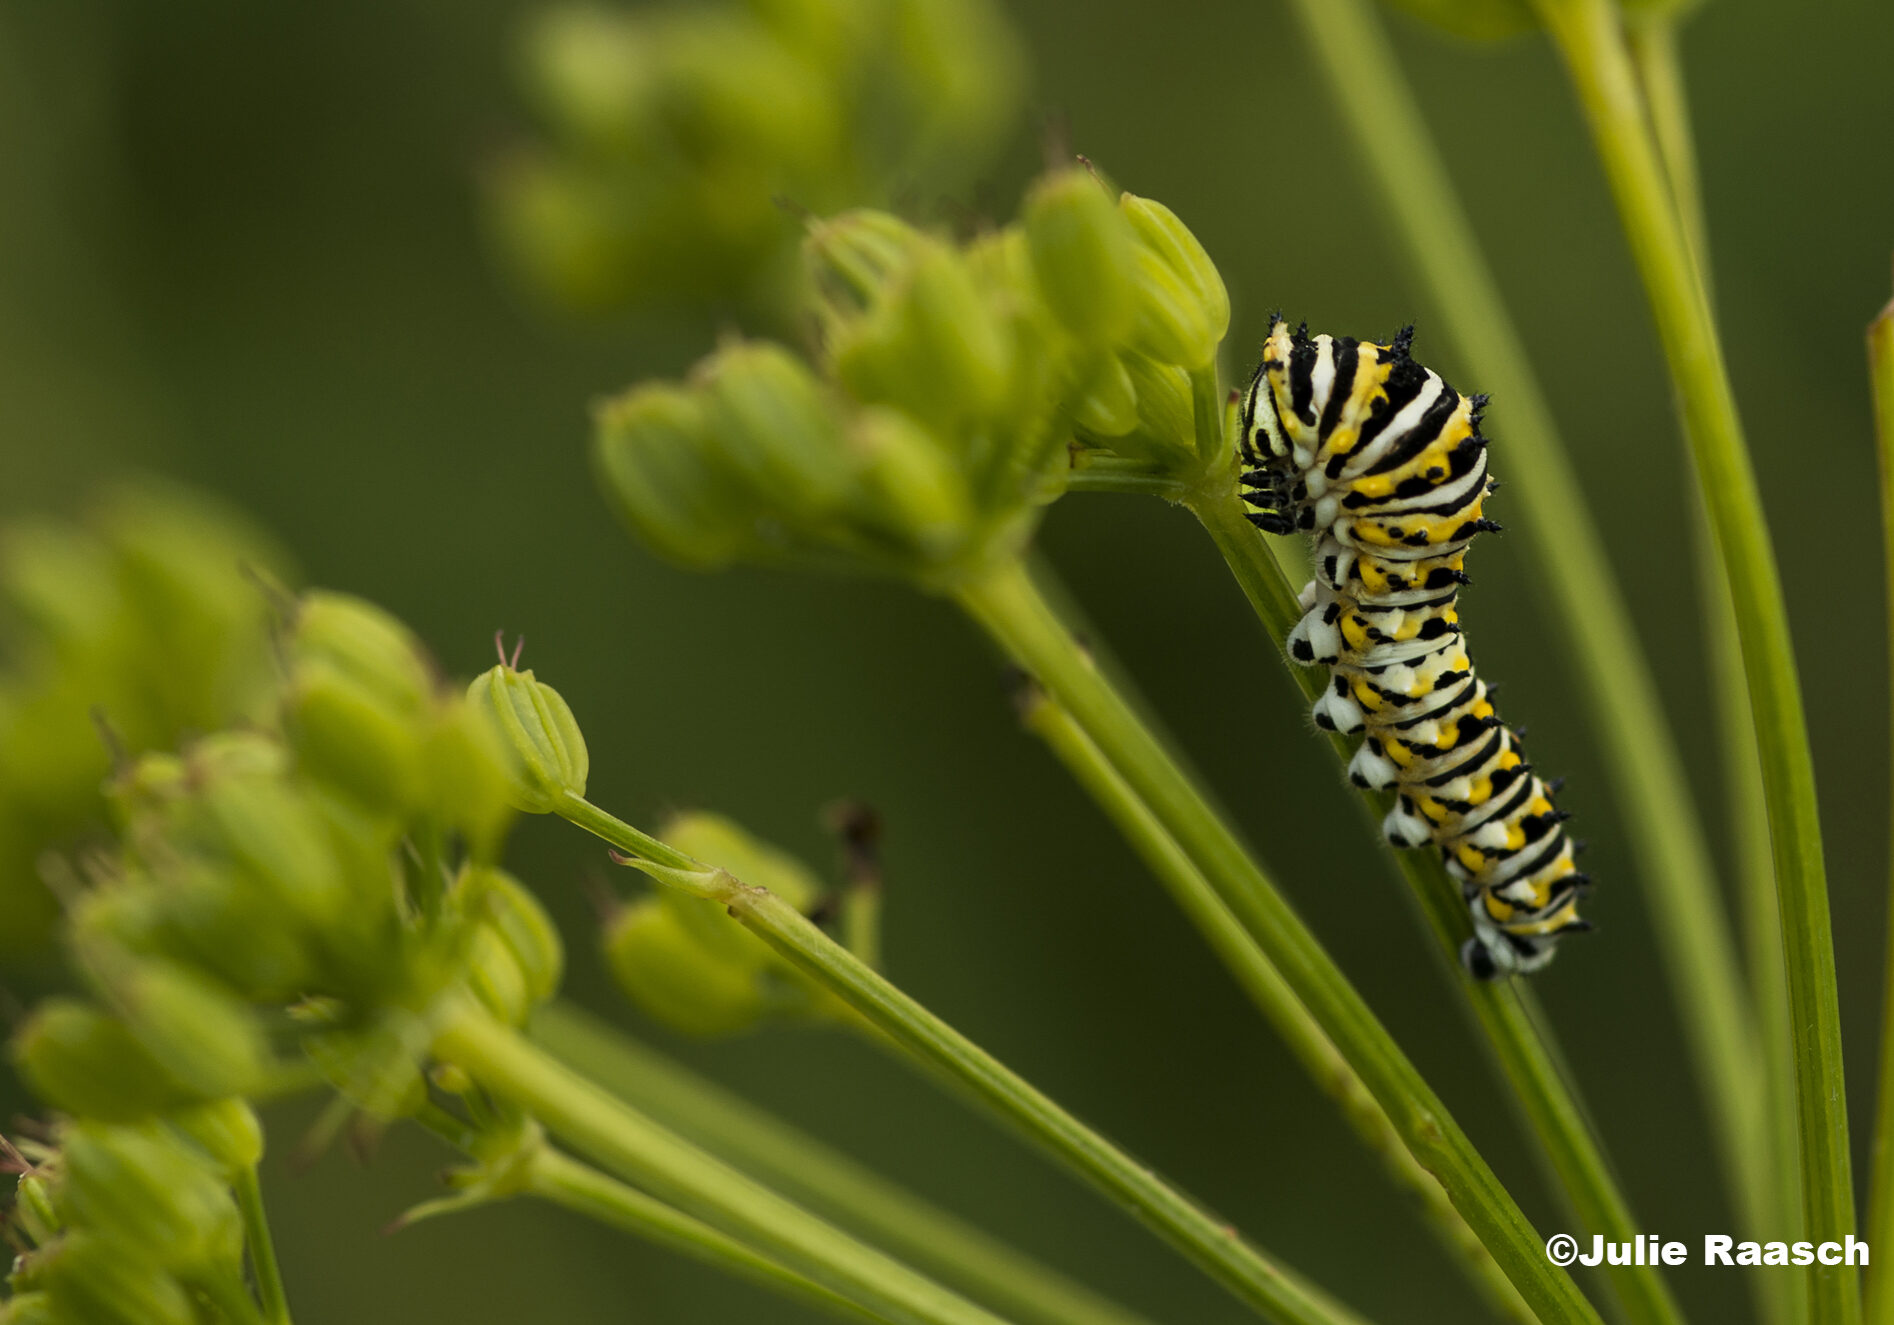 A caterpillar climbing the stalk of a plant